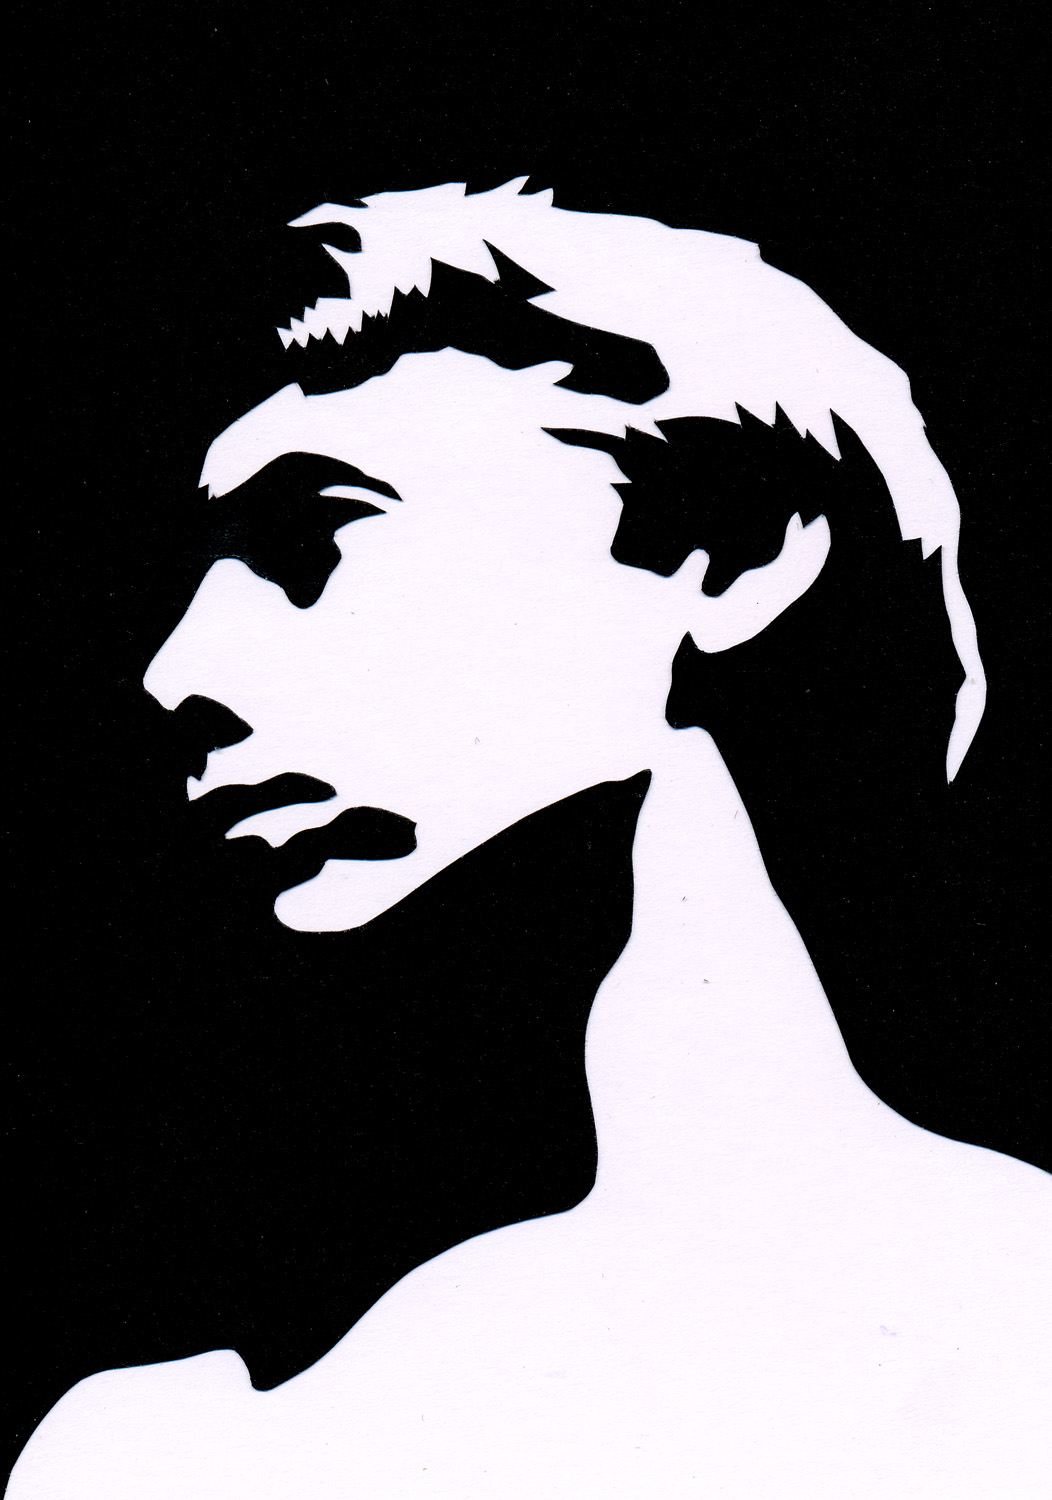 In Light, cut paper collage, Mike Tedder